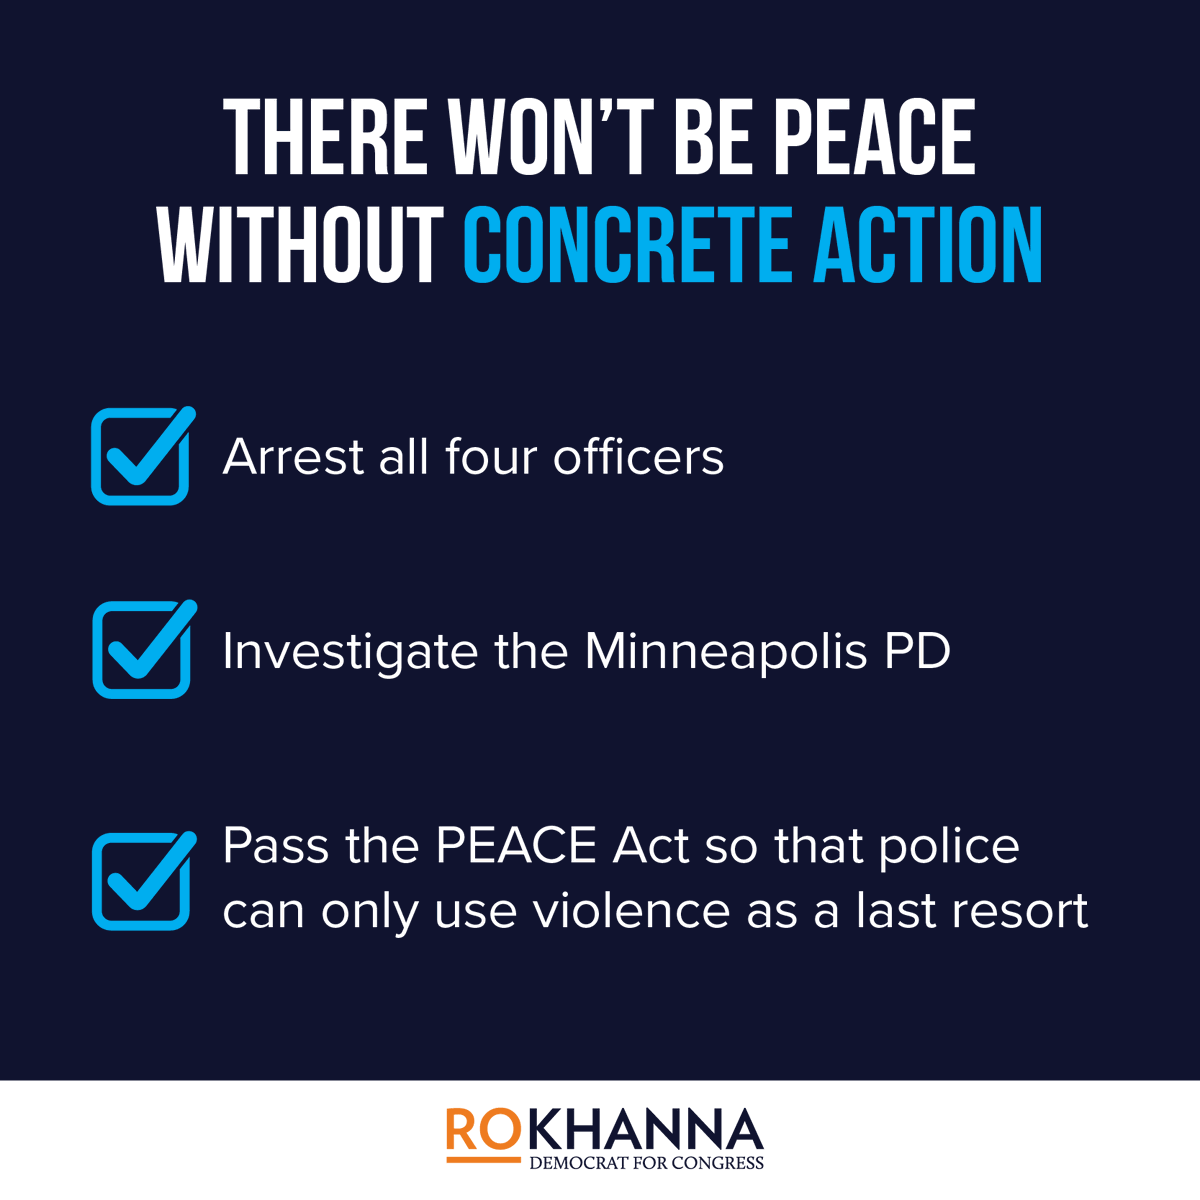 If we want peace, we need to take concrete action toward racial justice and police accountability in America.